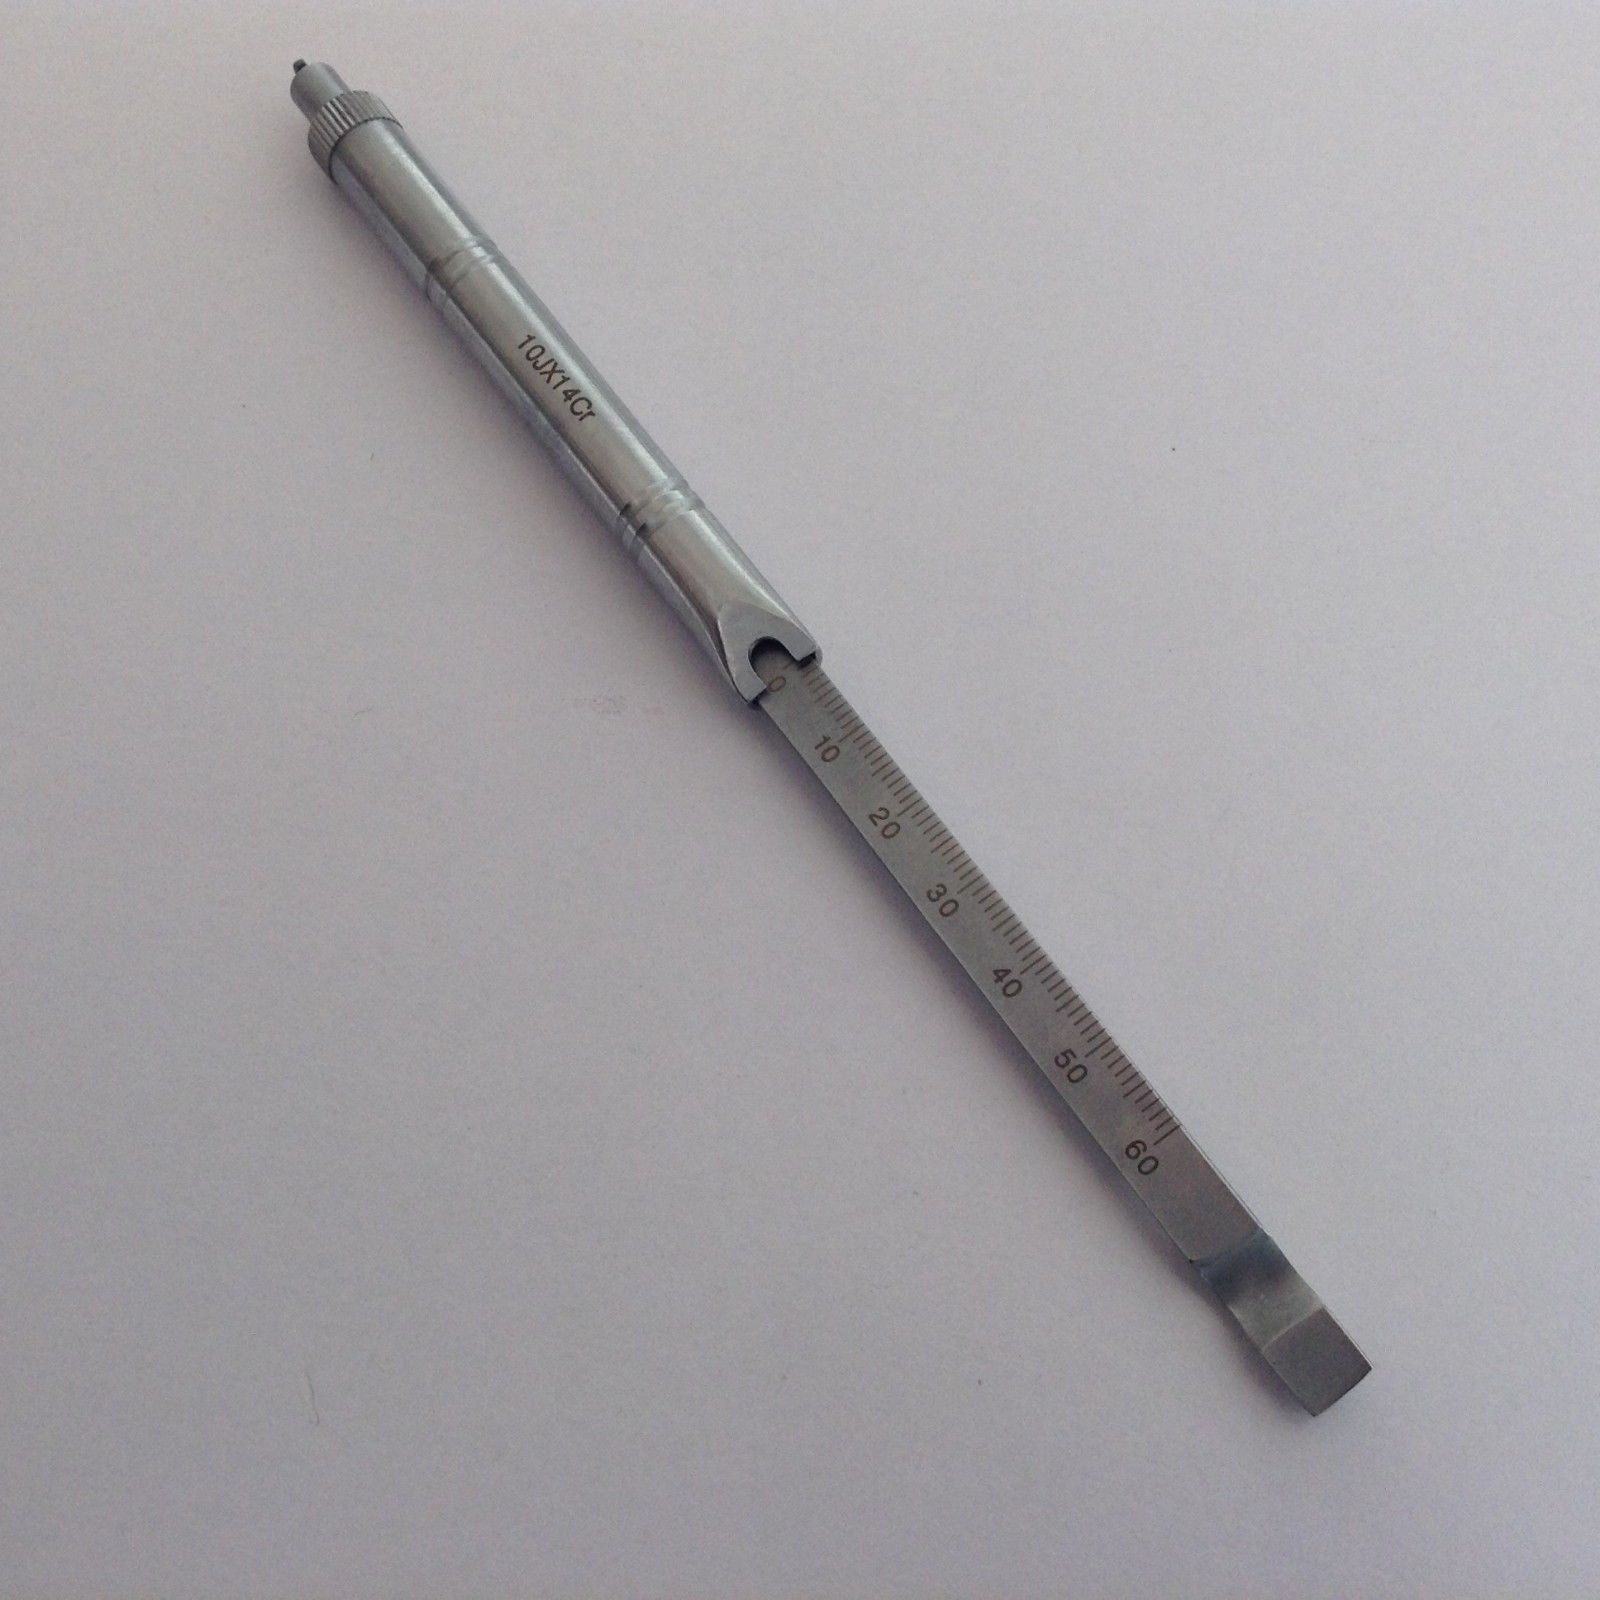 New Depth Gauge 0mm To 60mm Orthopedics Veterinary Surgical Instruments